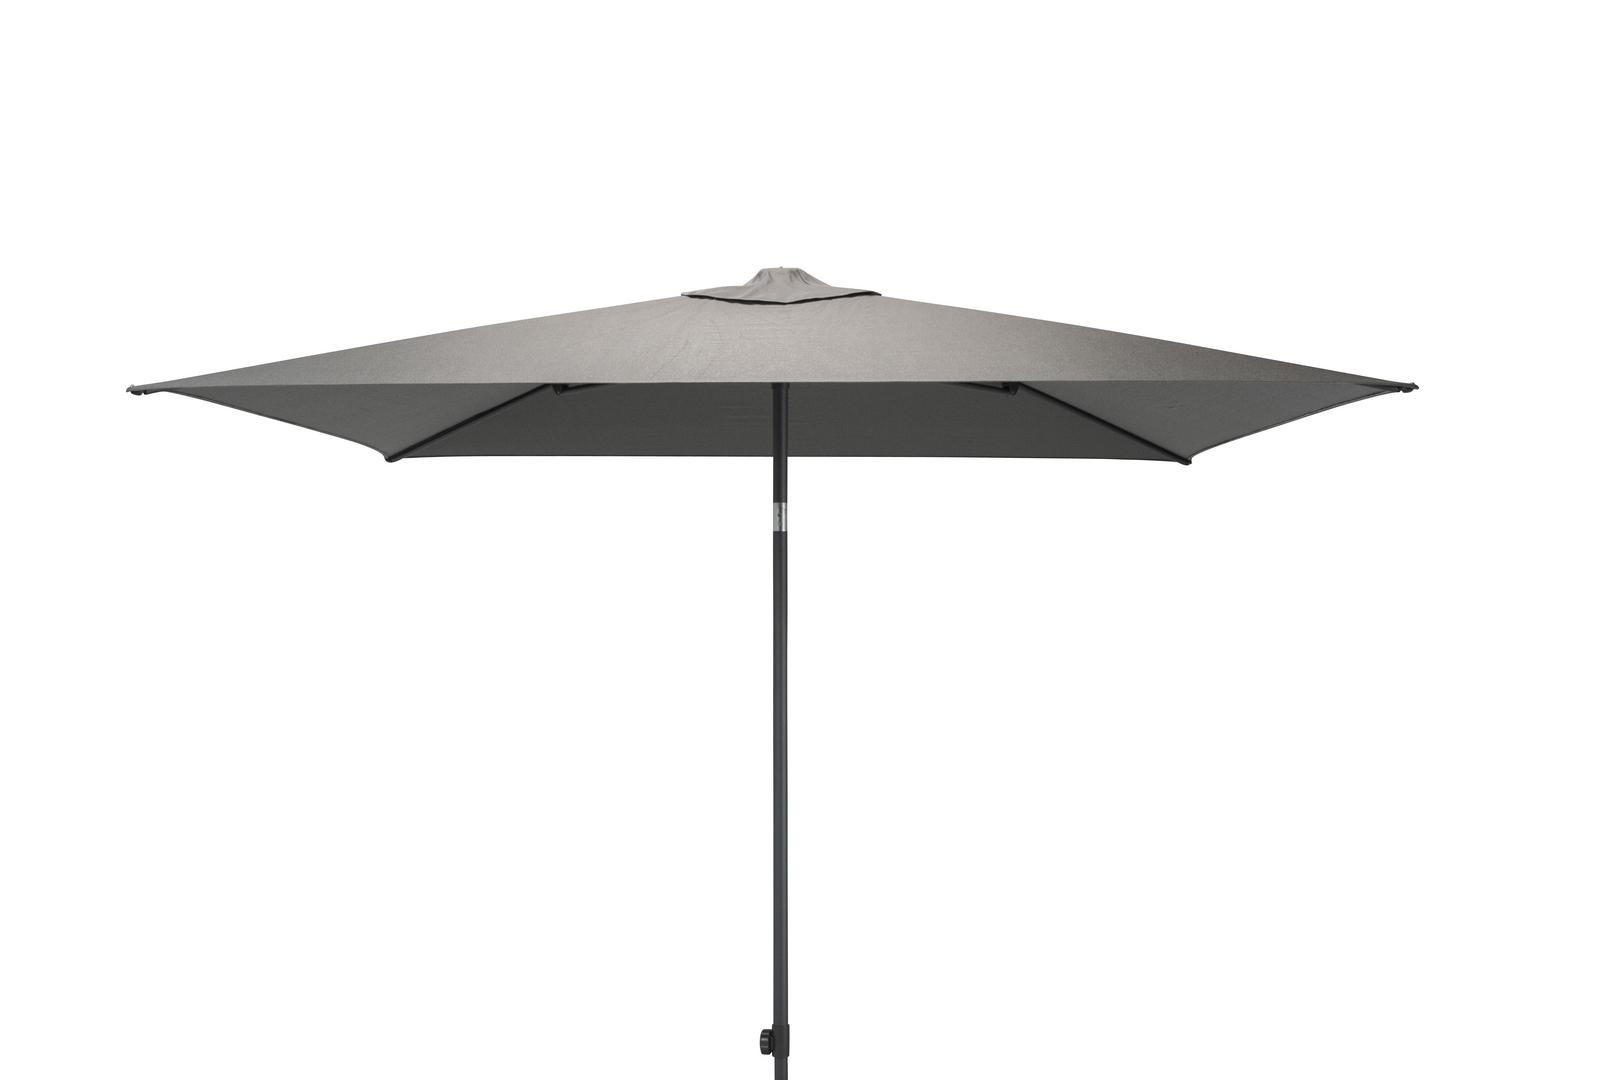 4 Seasons Outdoor Azzurro 2,5 x 2,5m parasol Mid Grey